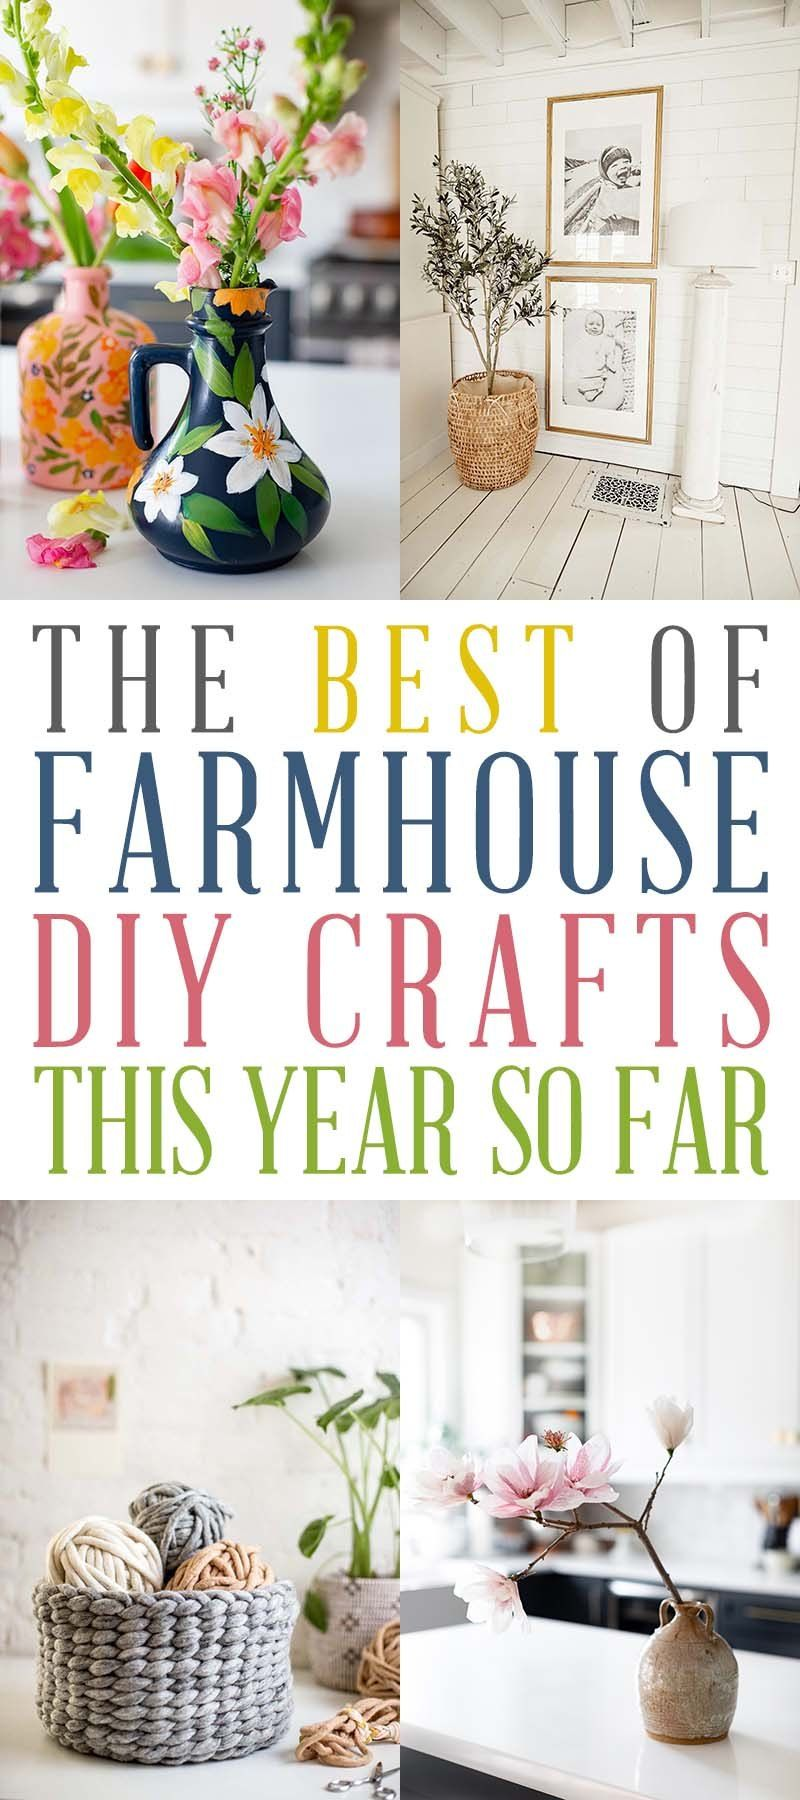 The Best of Farmhouse DIY Crafts This Year So Far!  Come and check out some of the best Farmhouse DIY Crafts from this year!  You are going to love each and every one!  #Farmhouse #DIYFarmhouseCrafts #DIYCrafts #FarmhouseCraftDIYS